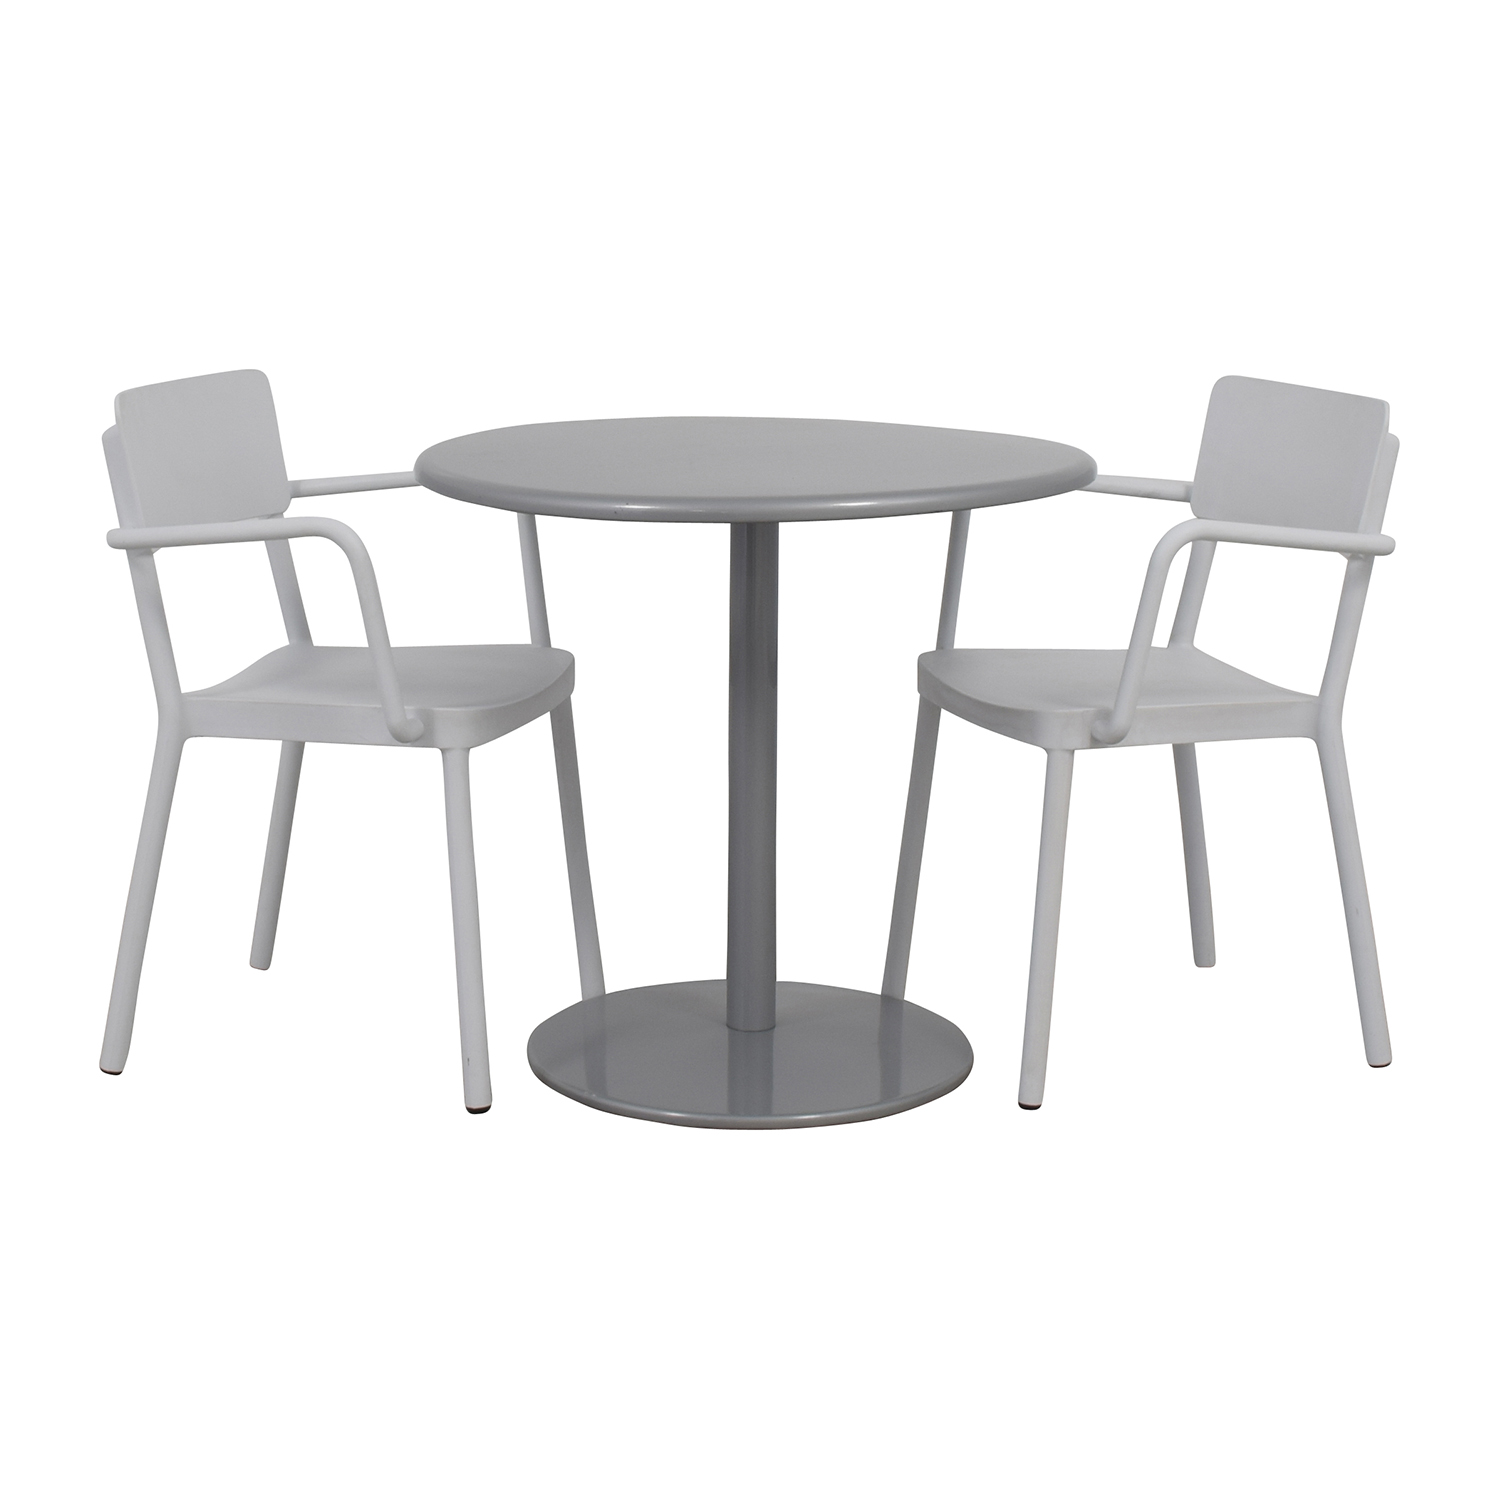 Design Within Reach Design Within Reach Bistro Table and Two Chairs silver and white